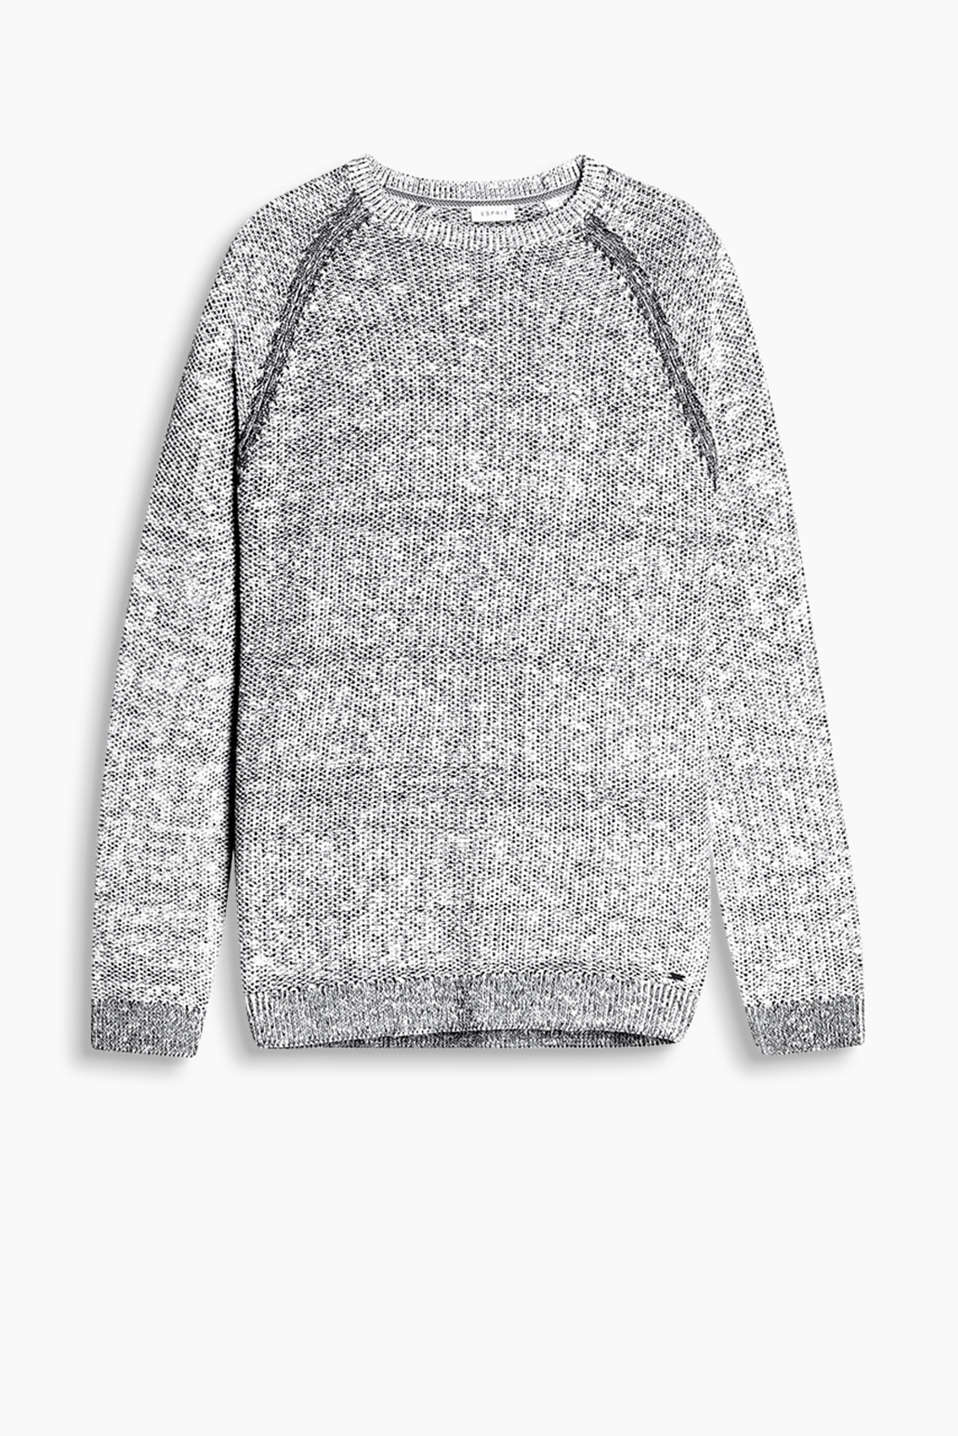 Irish Sweaters - Largest Selection Of Premium Quality Irish Sweaters Add design and style to your wardrobe with the Blarney Woollen Mills range of Irish sweaters and accessories. Choose from our range of traditional and contemporary yarns and designs producing classical Irish wool sweaters.